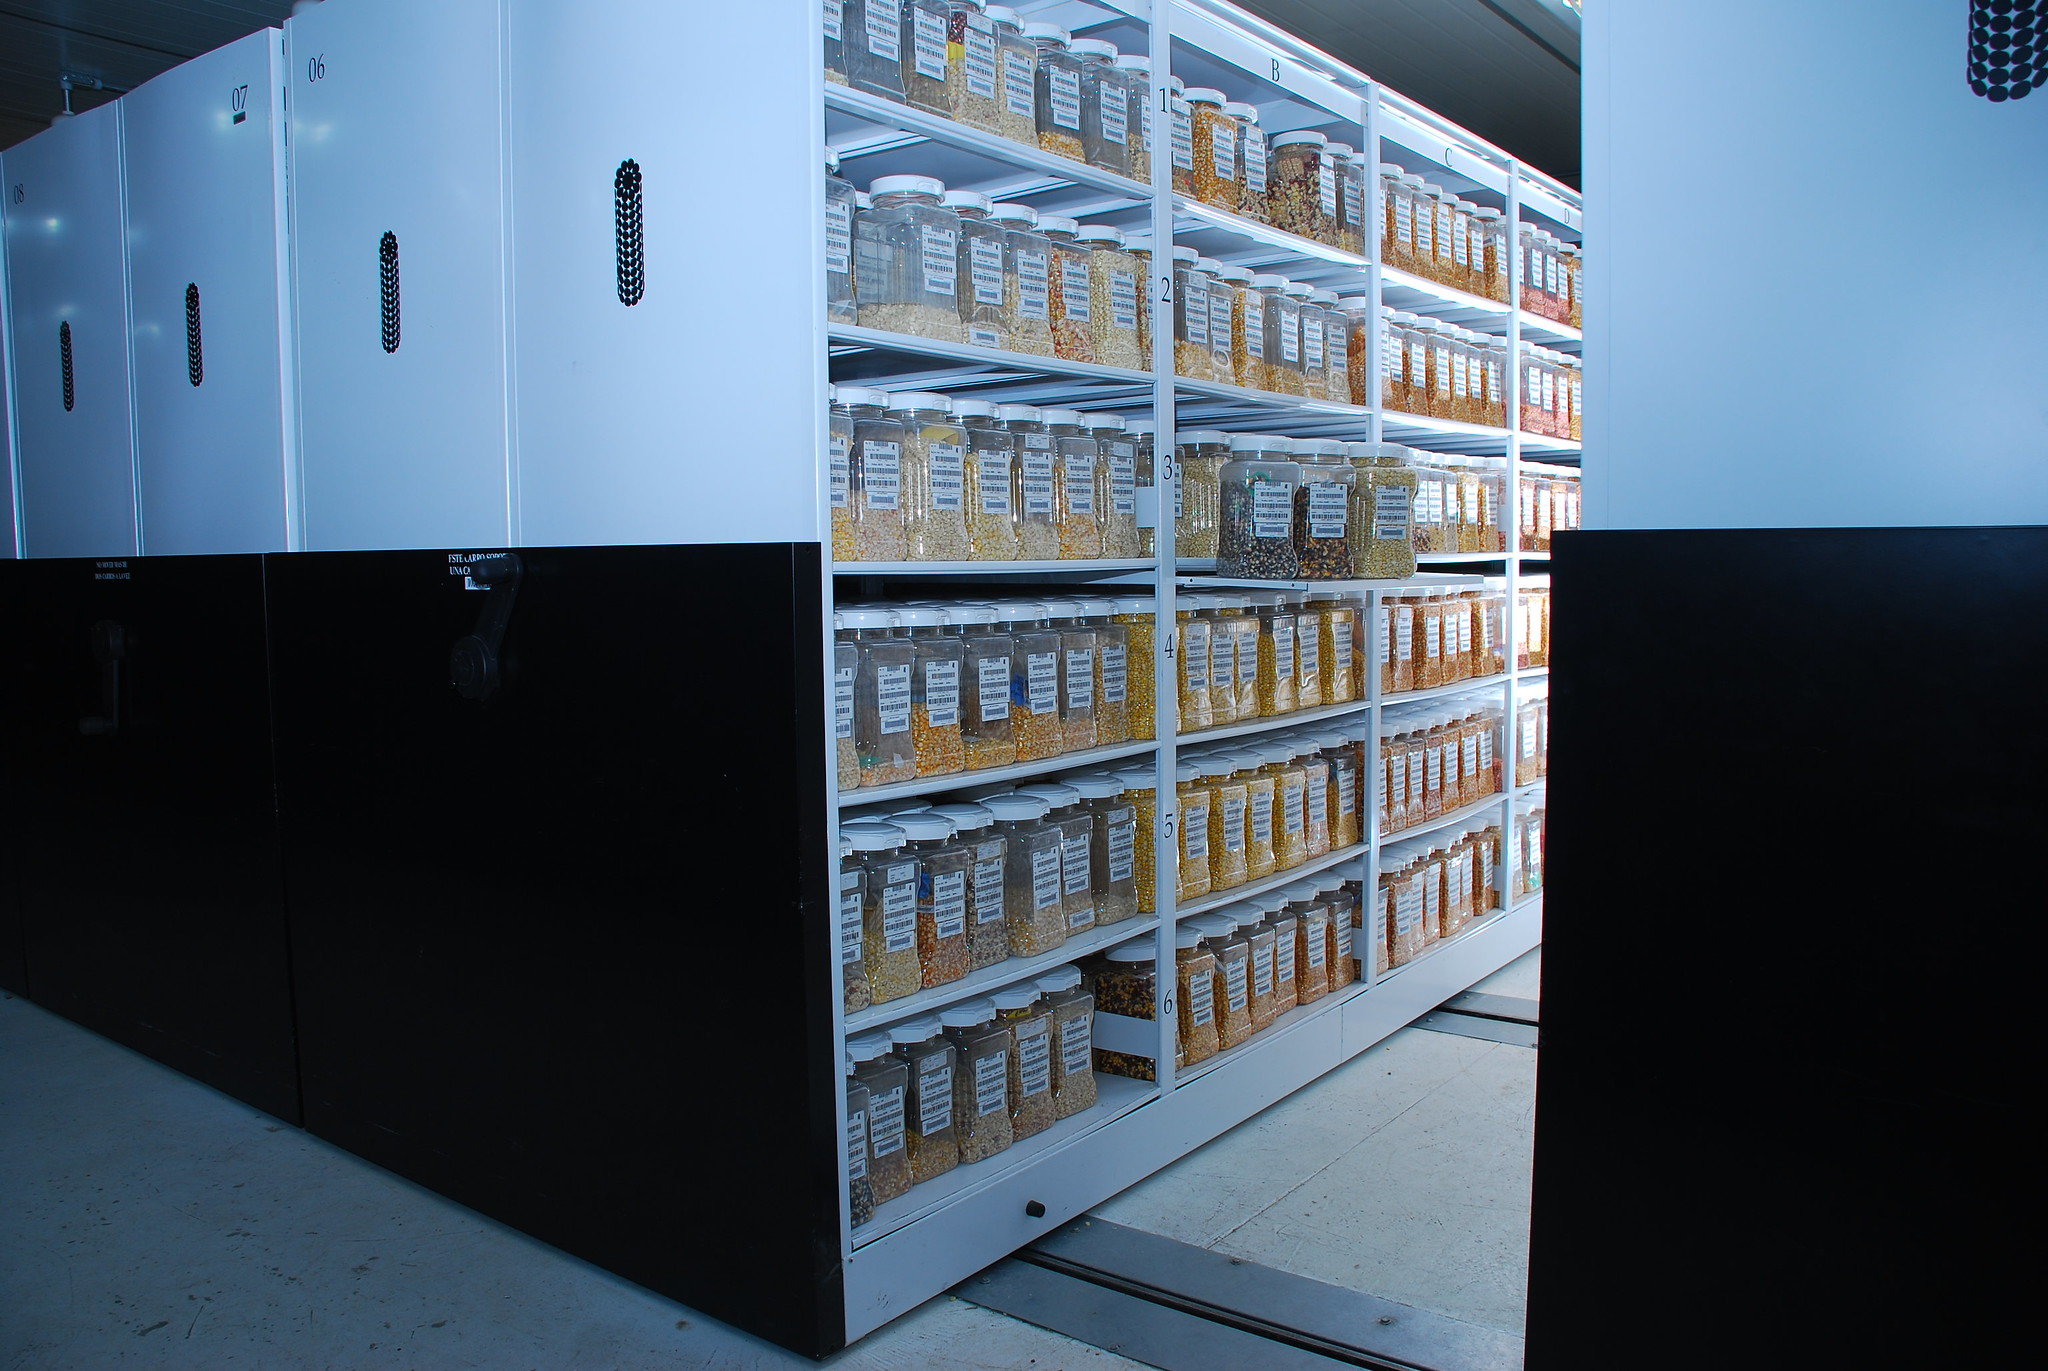 Shelves filled with maize seed samples make up the maize active collection in the Wellhausen-Anderson Plant Genetic Resources Center at CIMMYT's global headquarters in Texcoco, Mexico. Disaster-proof features of the bank include thick concrete walls and back-up power systems. (Photo: Xochiquetzal Fonseca/CIMMYT)